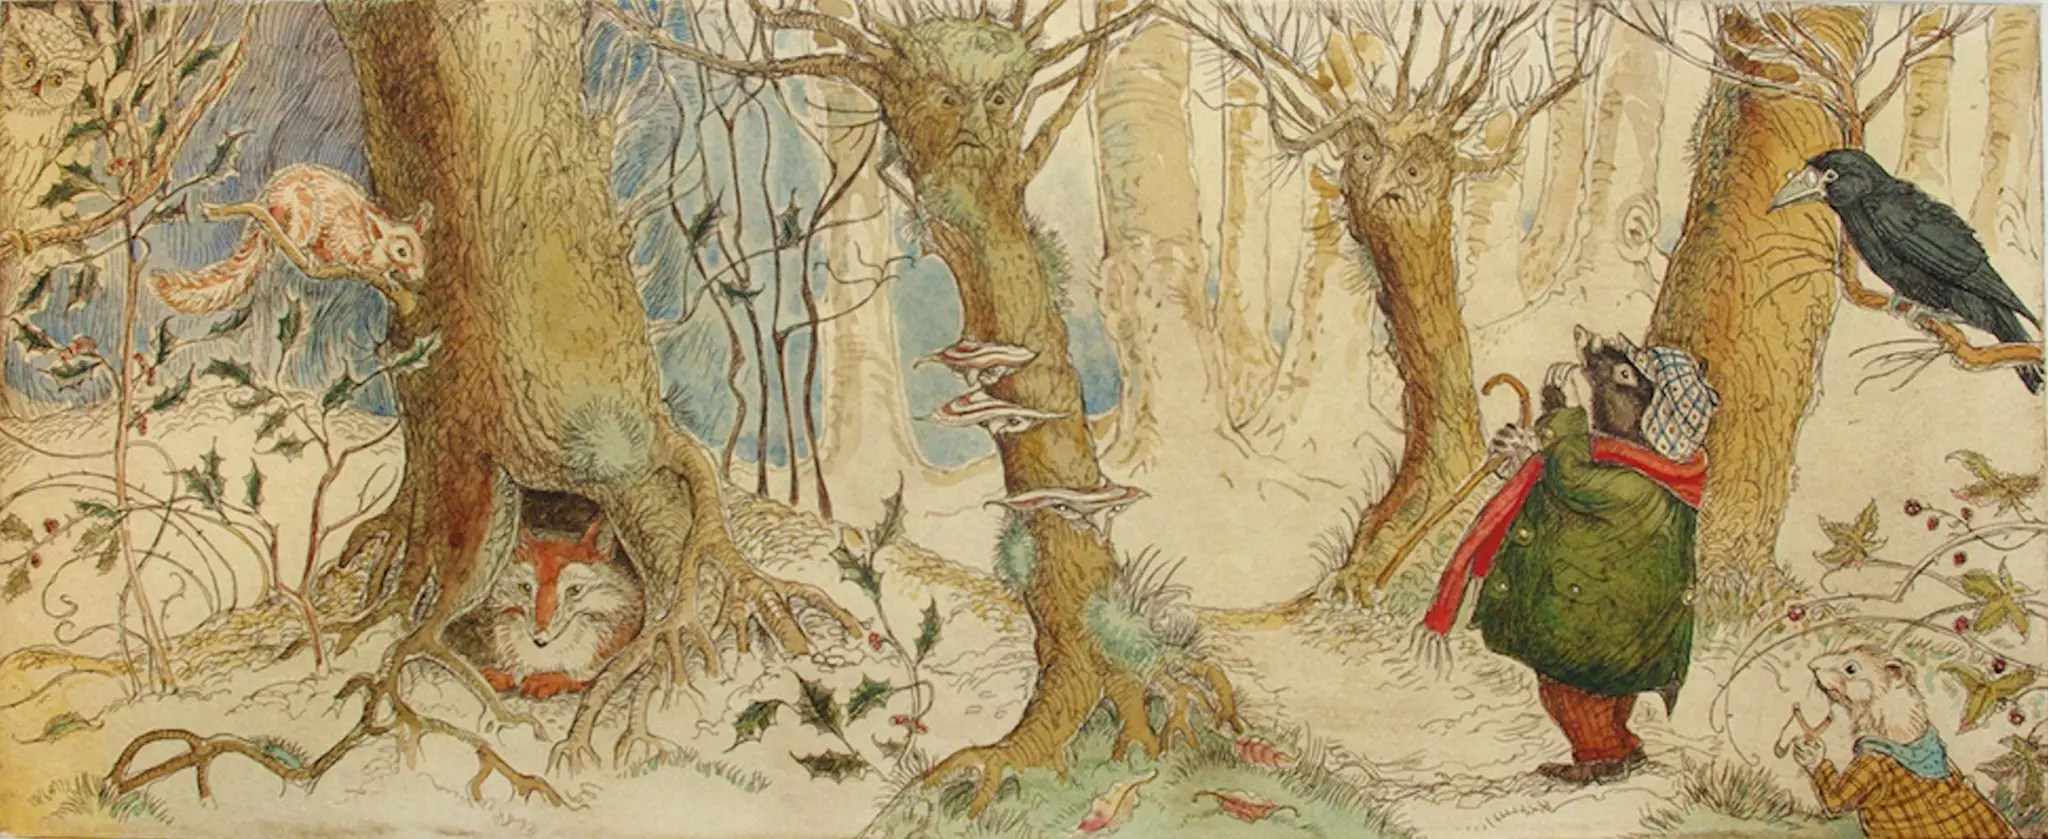 CVS Wind in the Willows etching